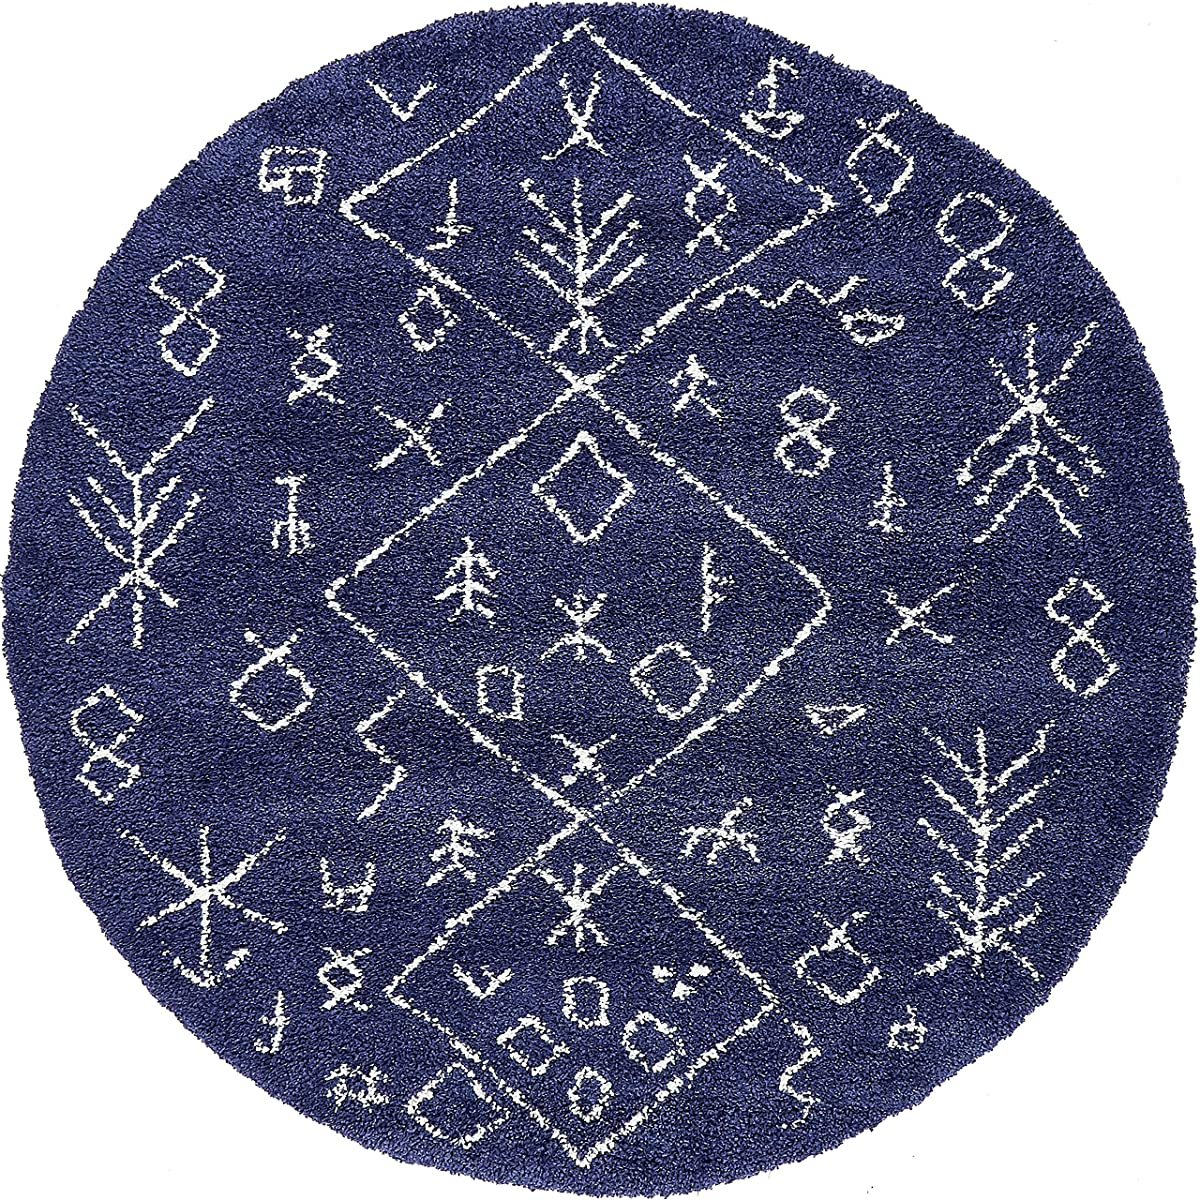 Unique Loom Rabat Shag Collection Tribal Moroccan Nomad Plush Navy Blue Round Rug (8 x 8)